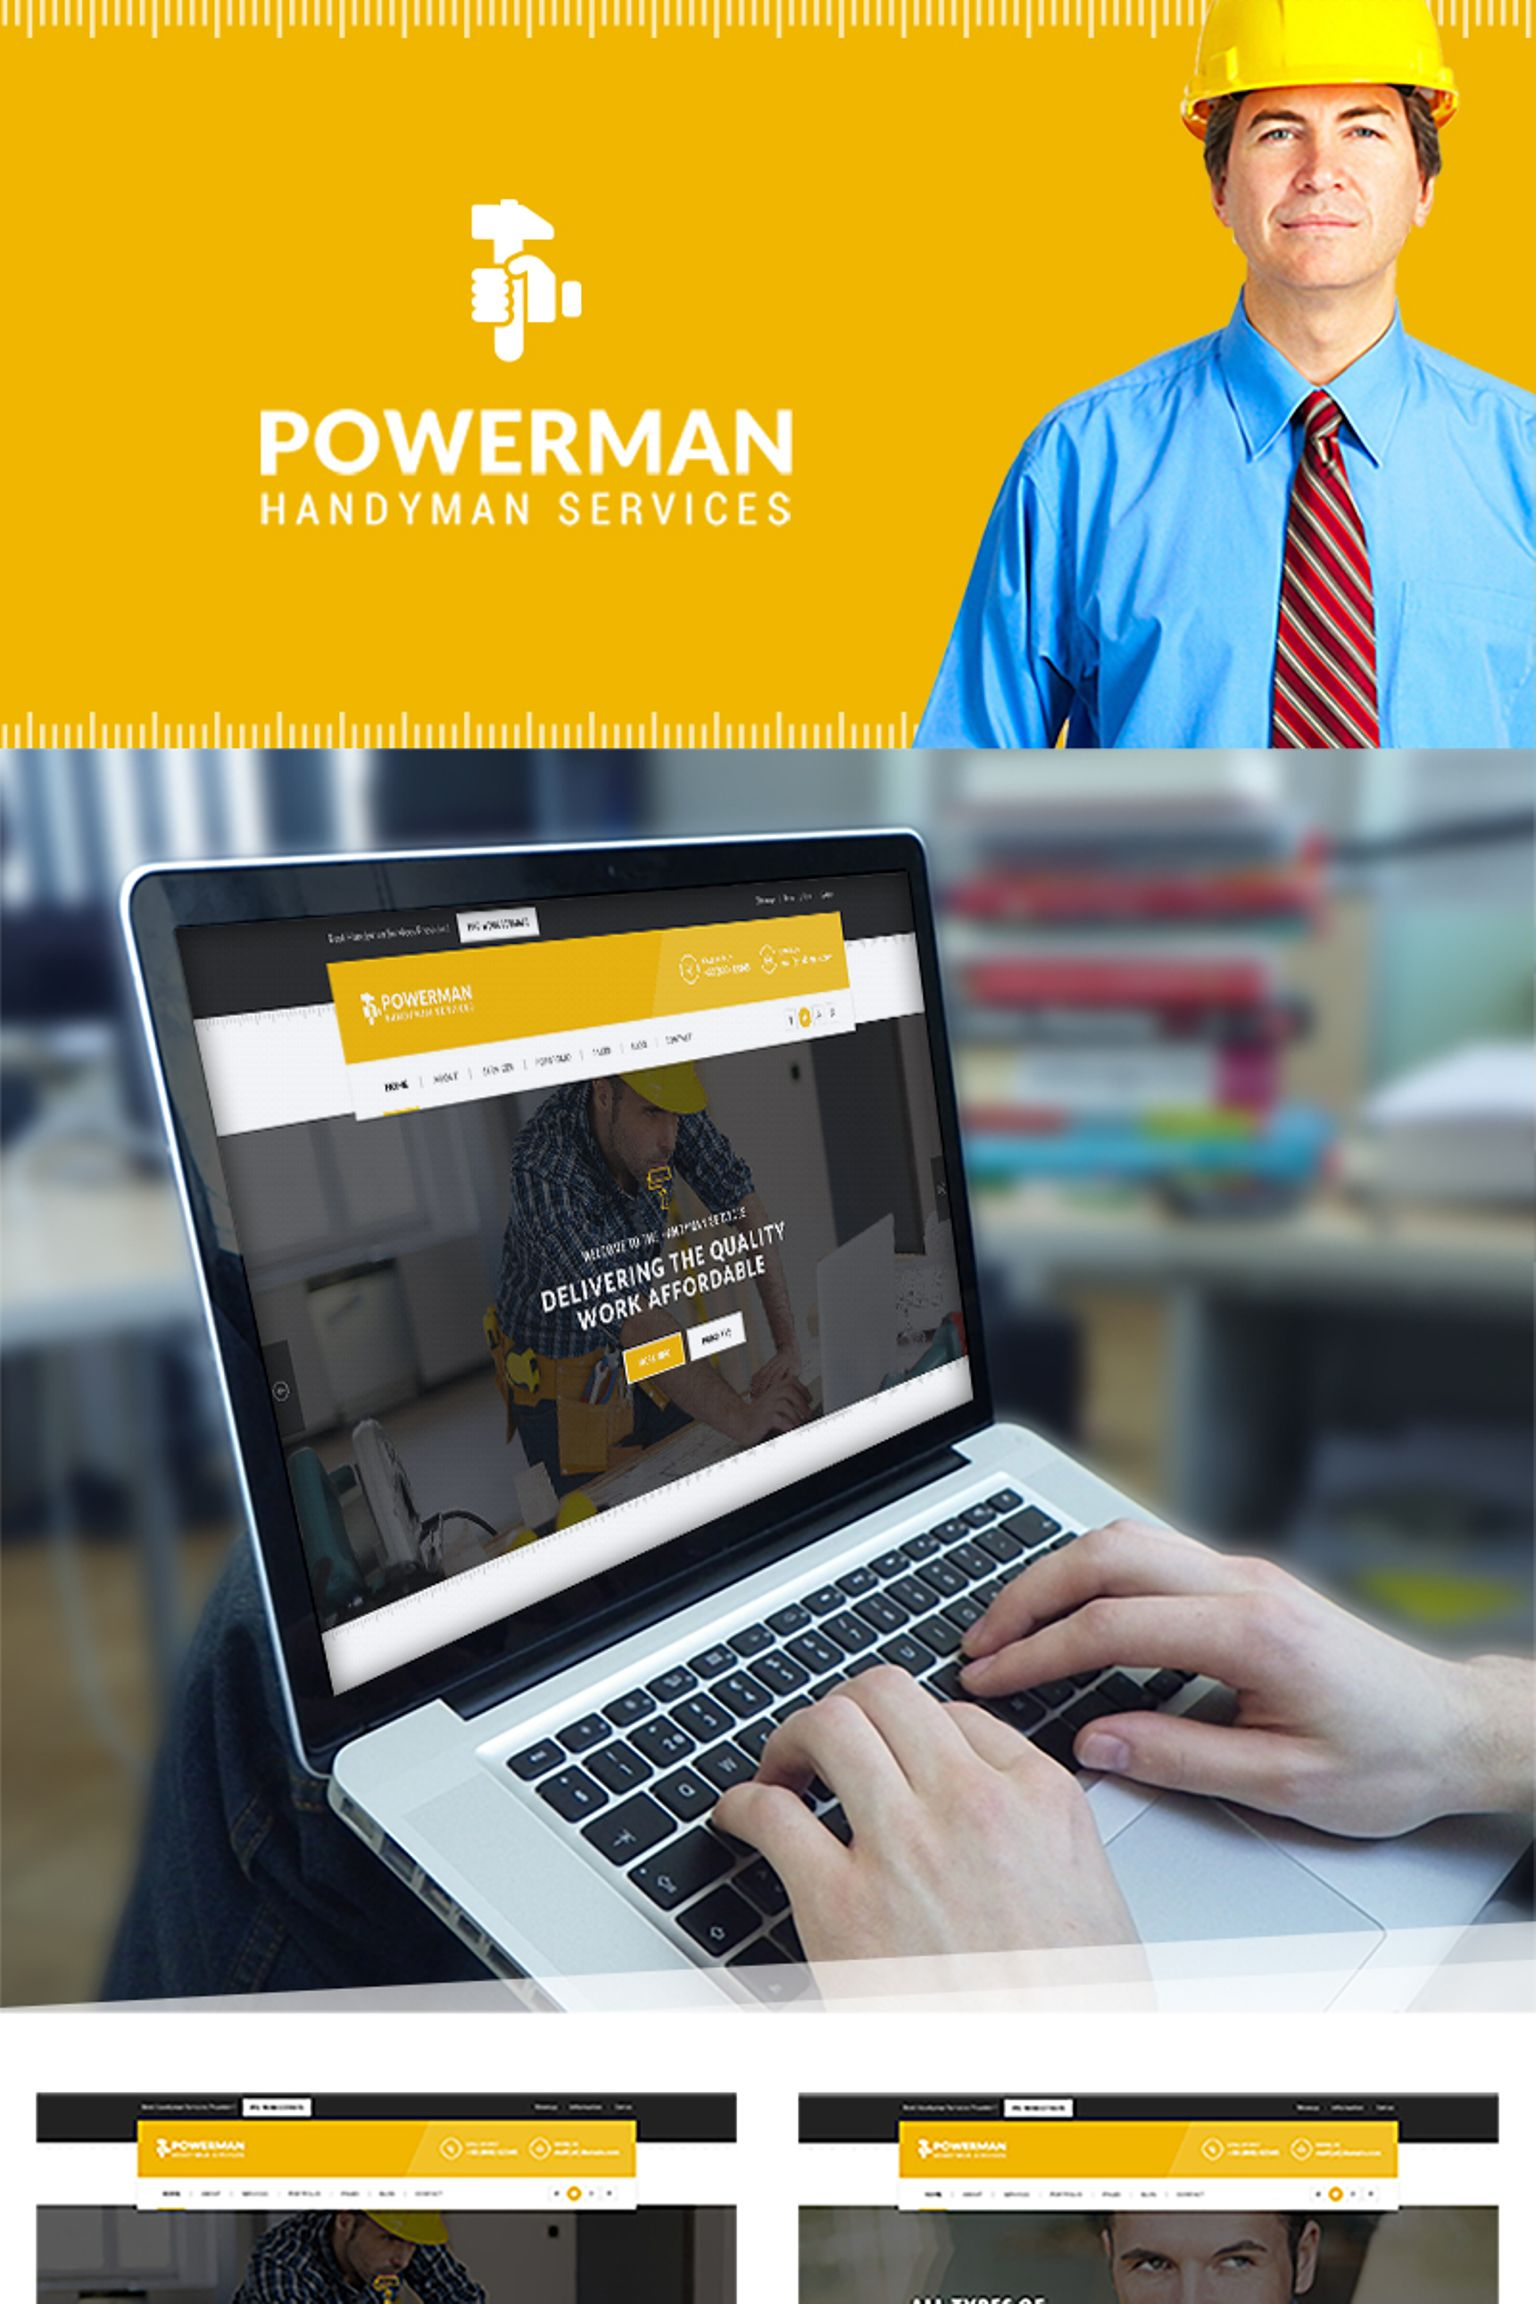 Powerman - Handyman Services Tema WordPress №65725